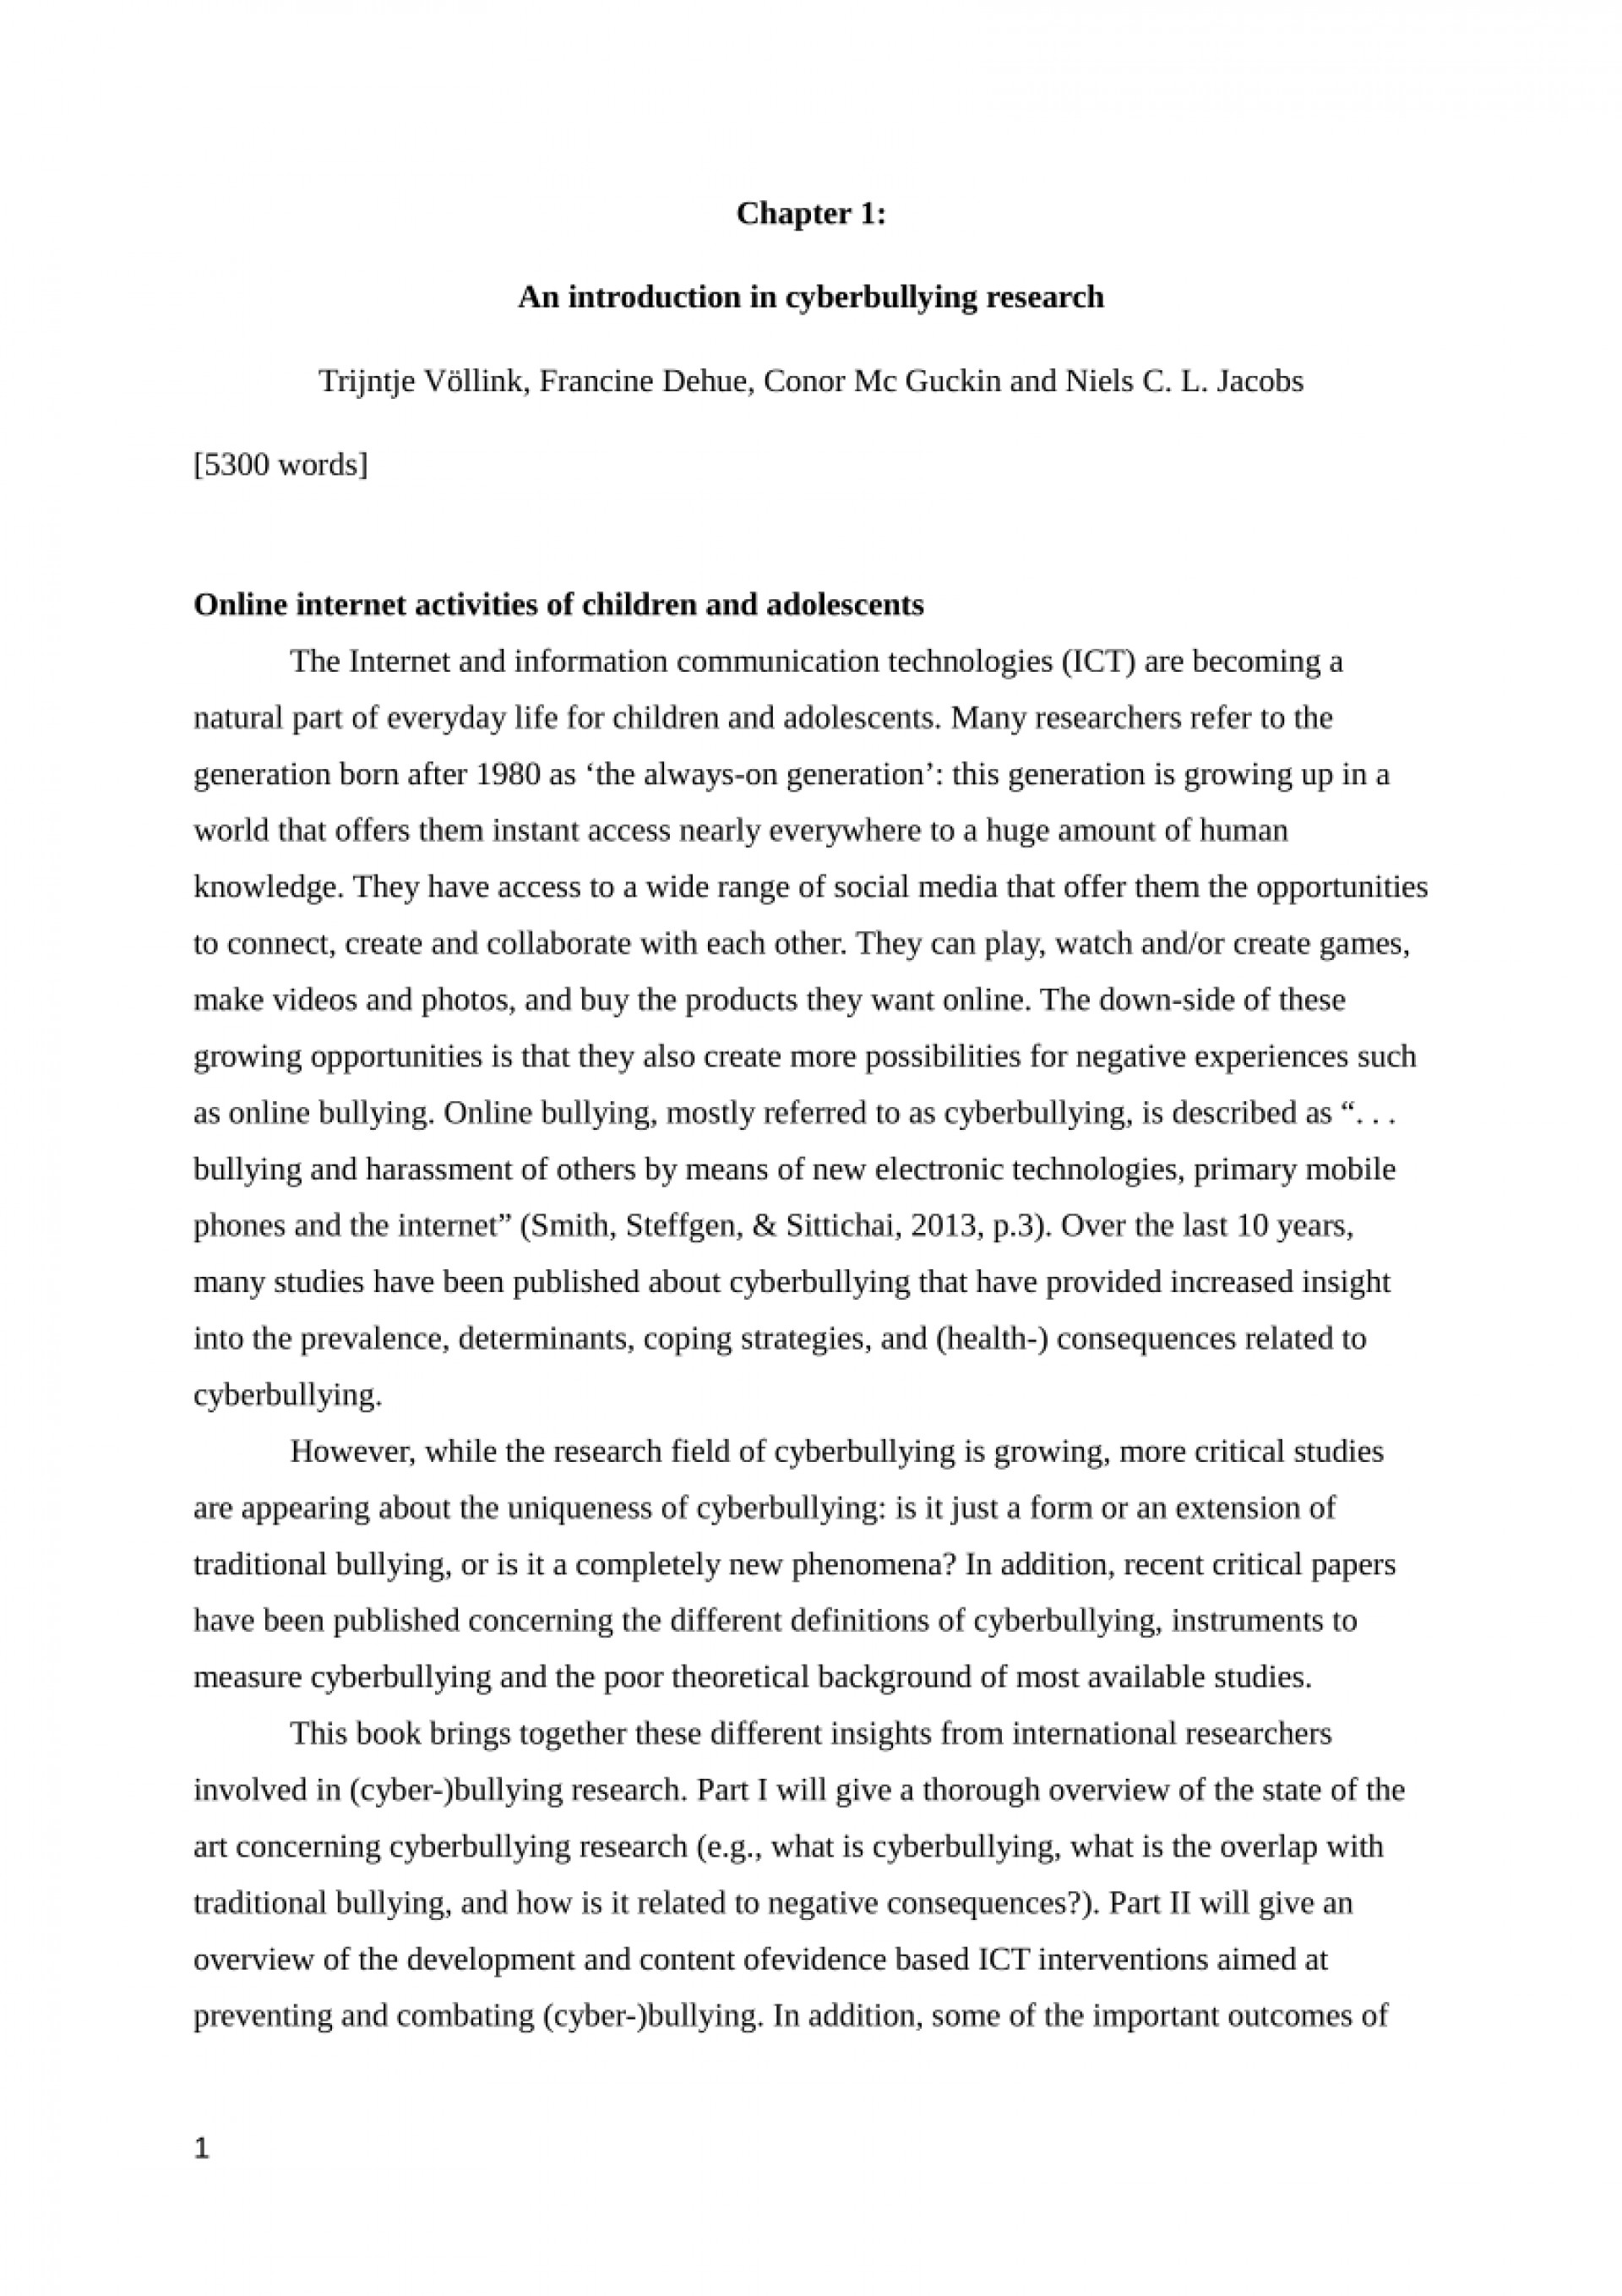 001 Cyberbullying Research Essay Paper Sensational Titles Tagalog Thesis 1920